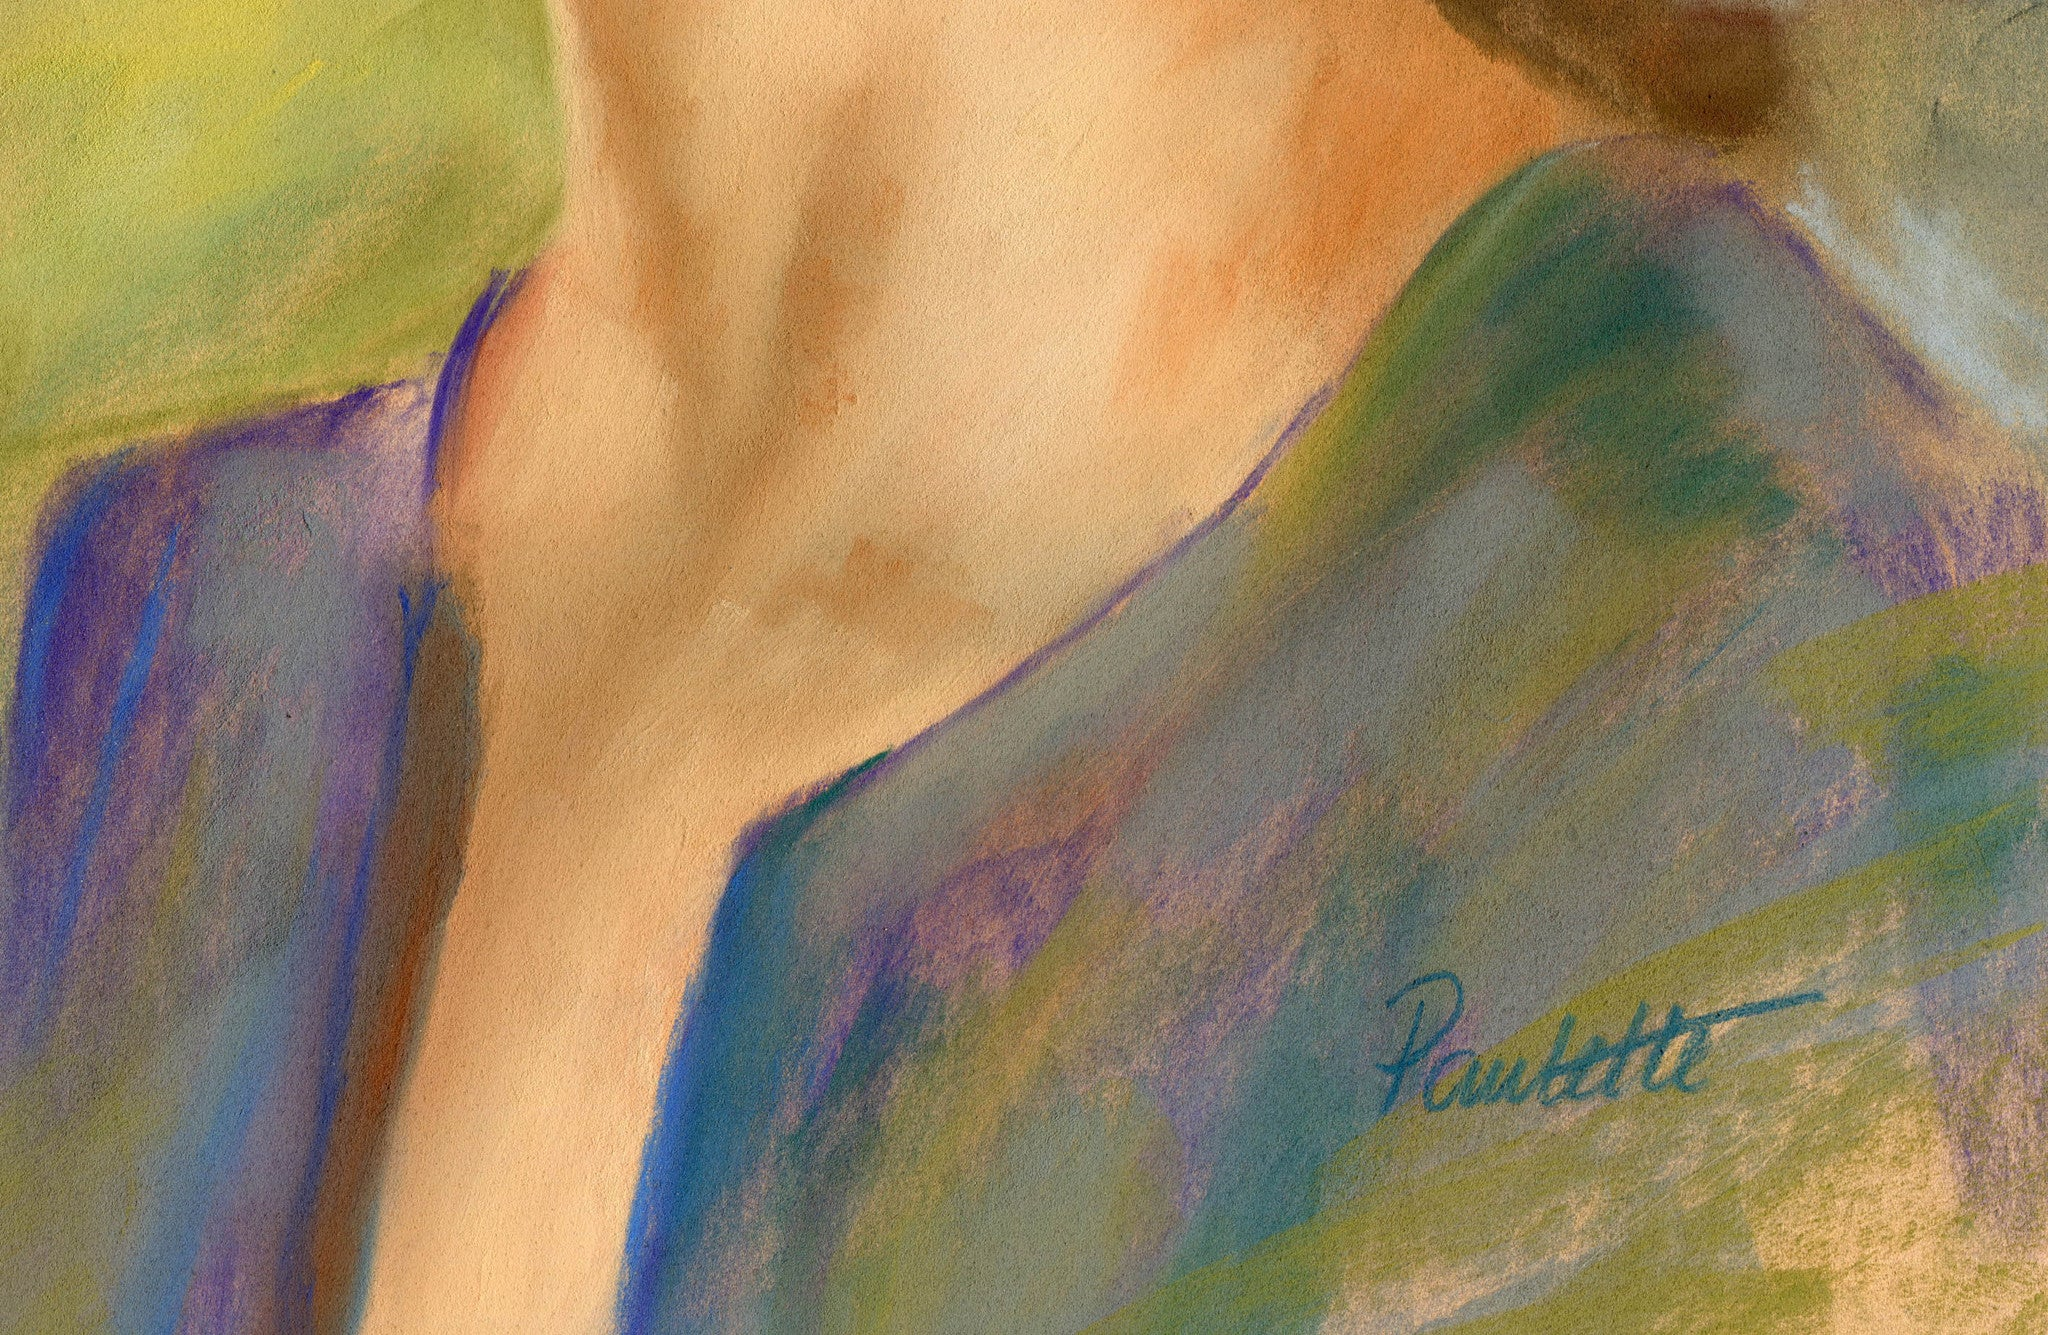 close up signature detail of the glance pastel portrait